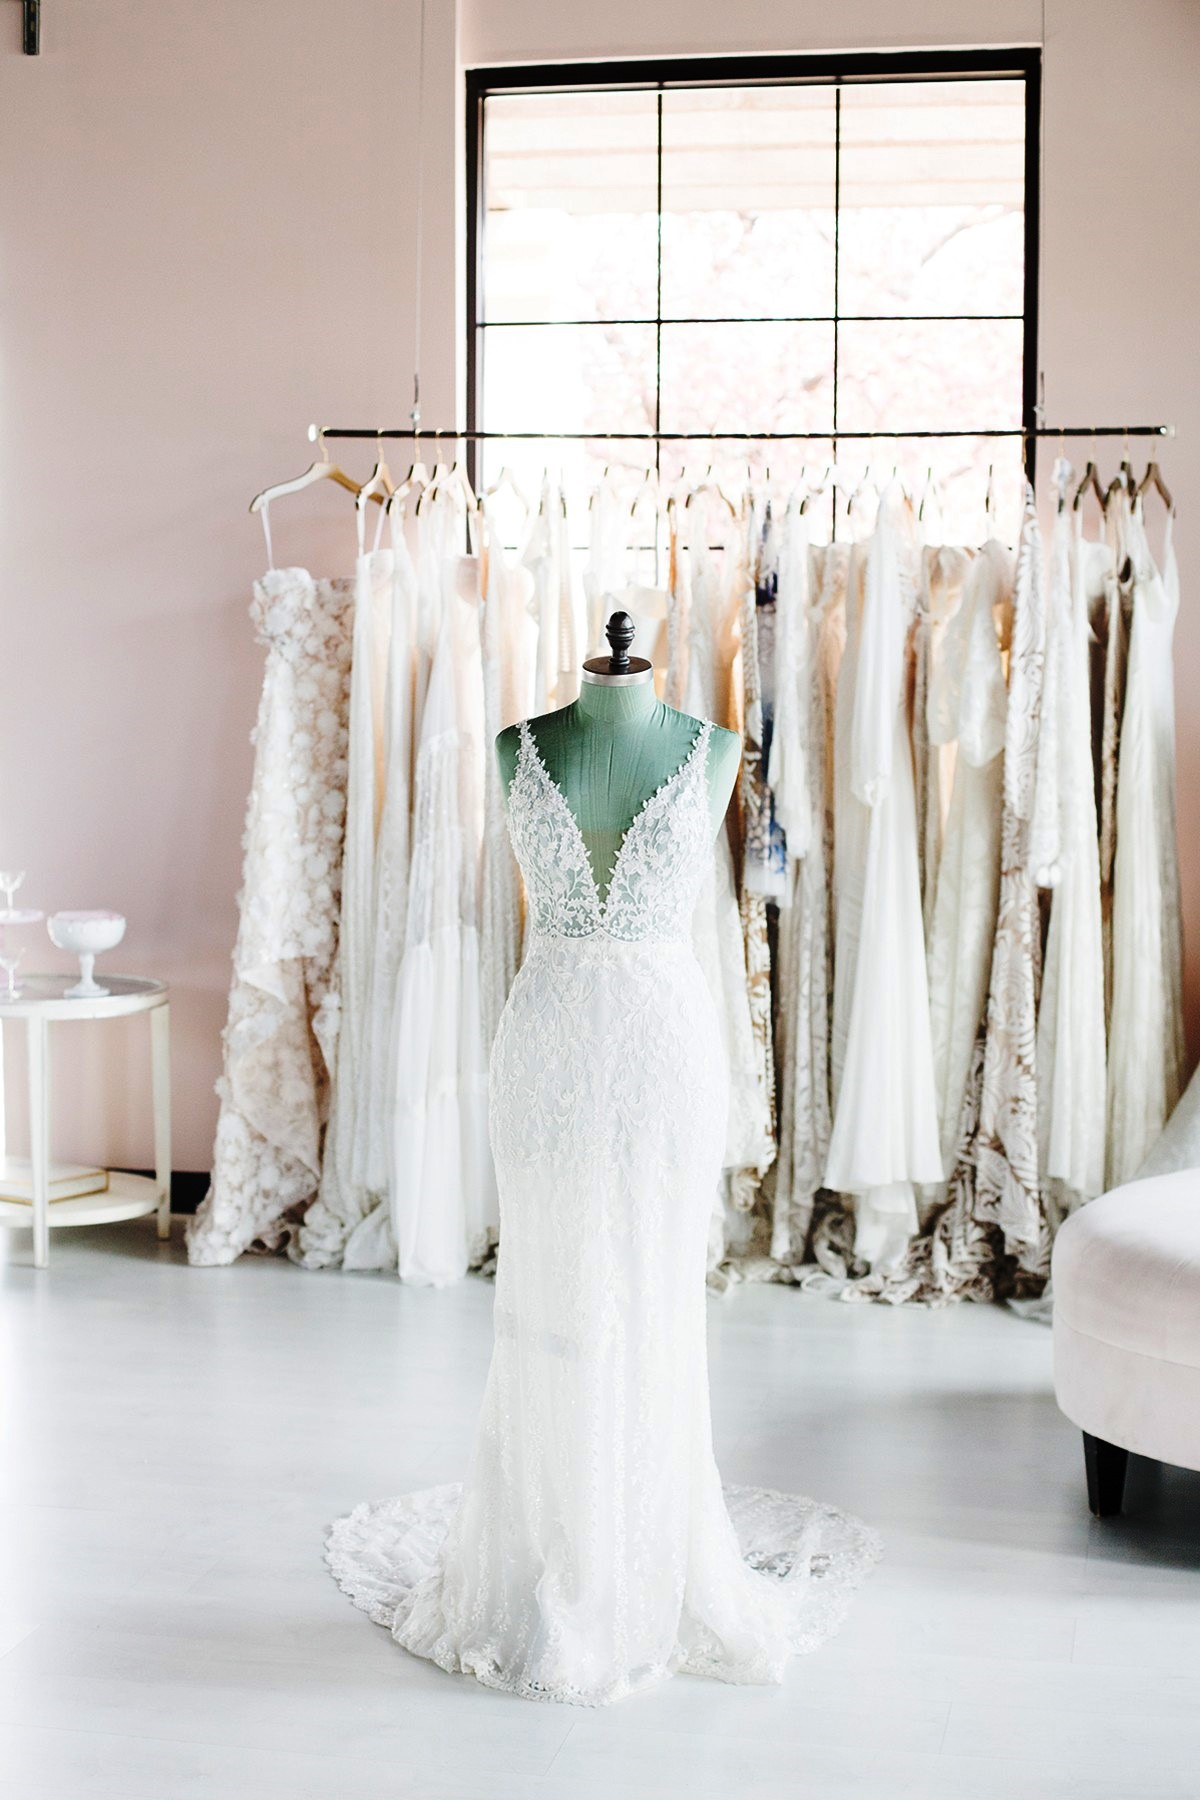 experience trying on a wedding dress at Swoon